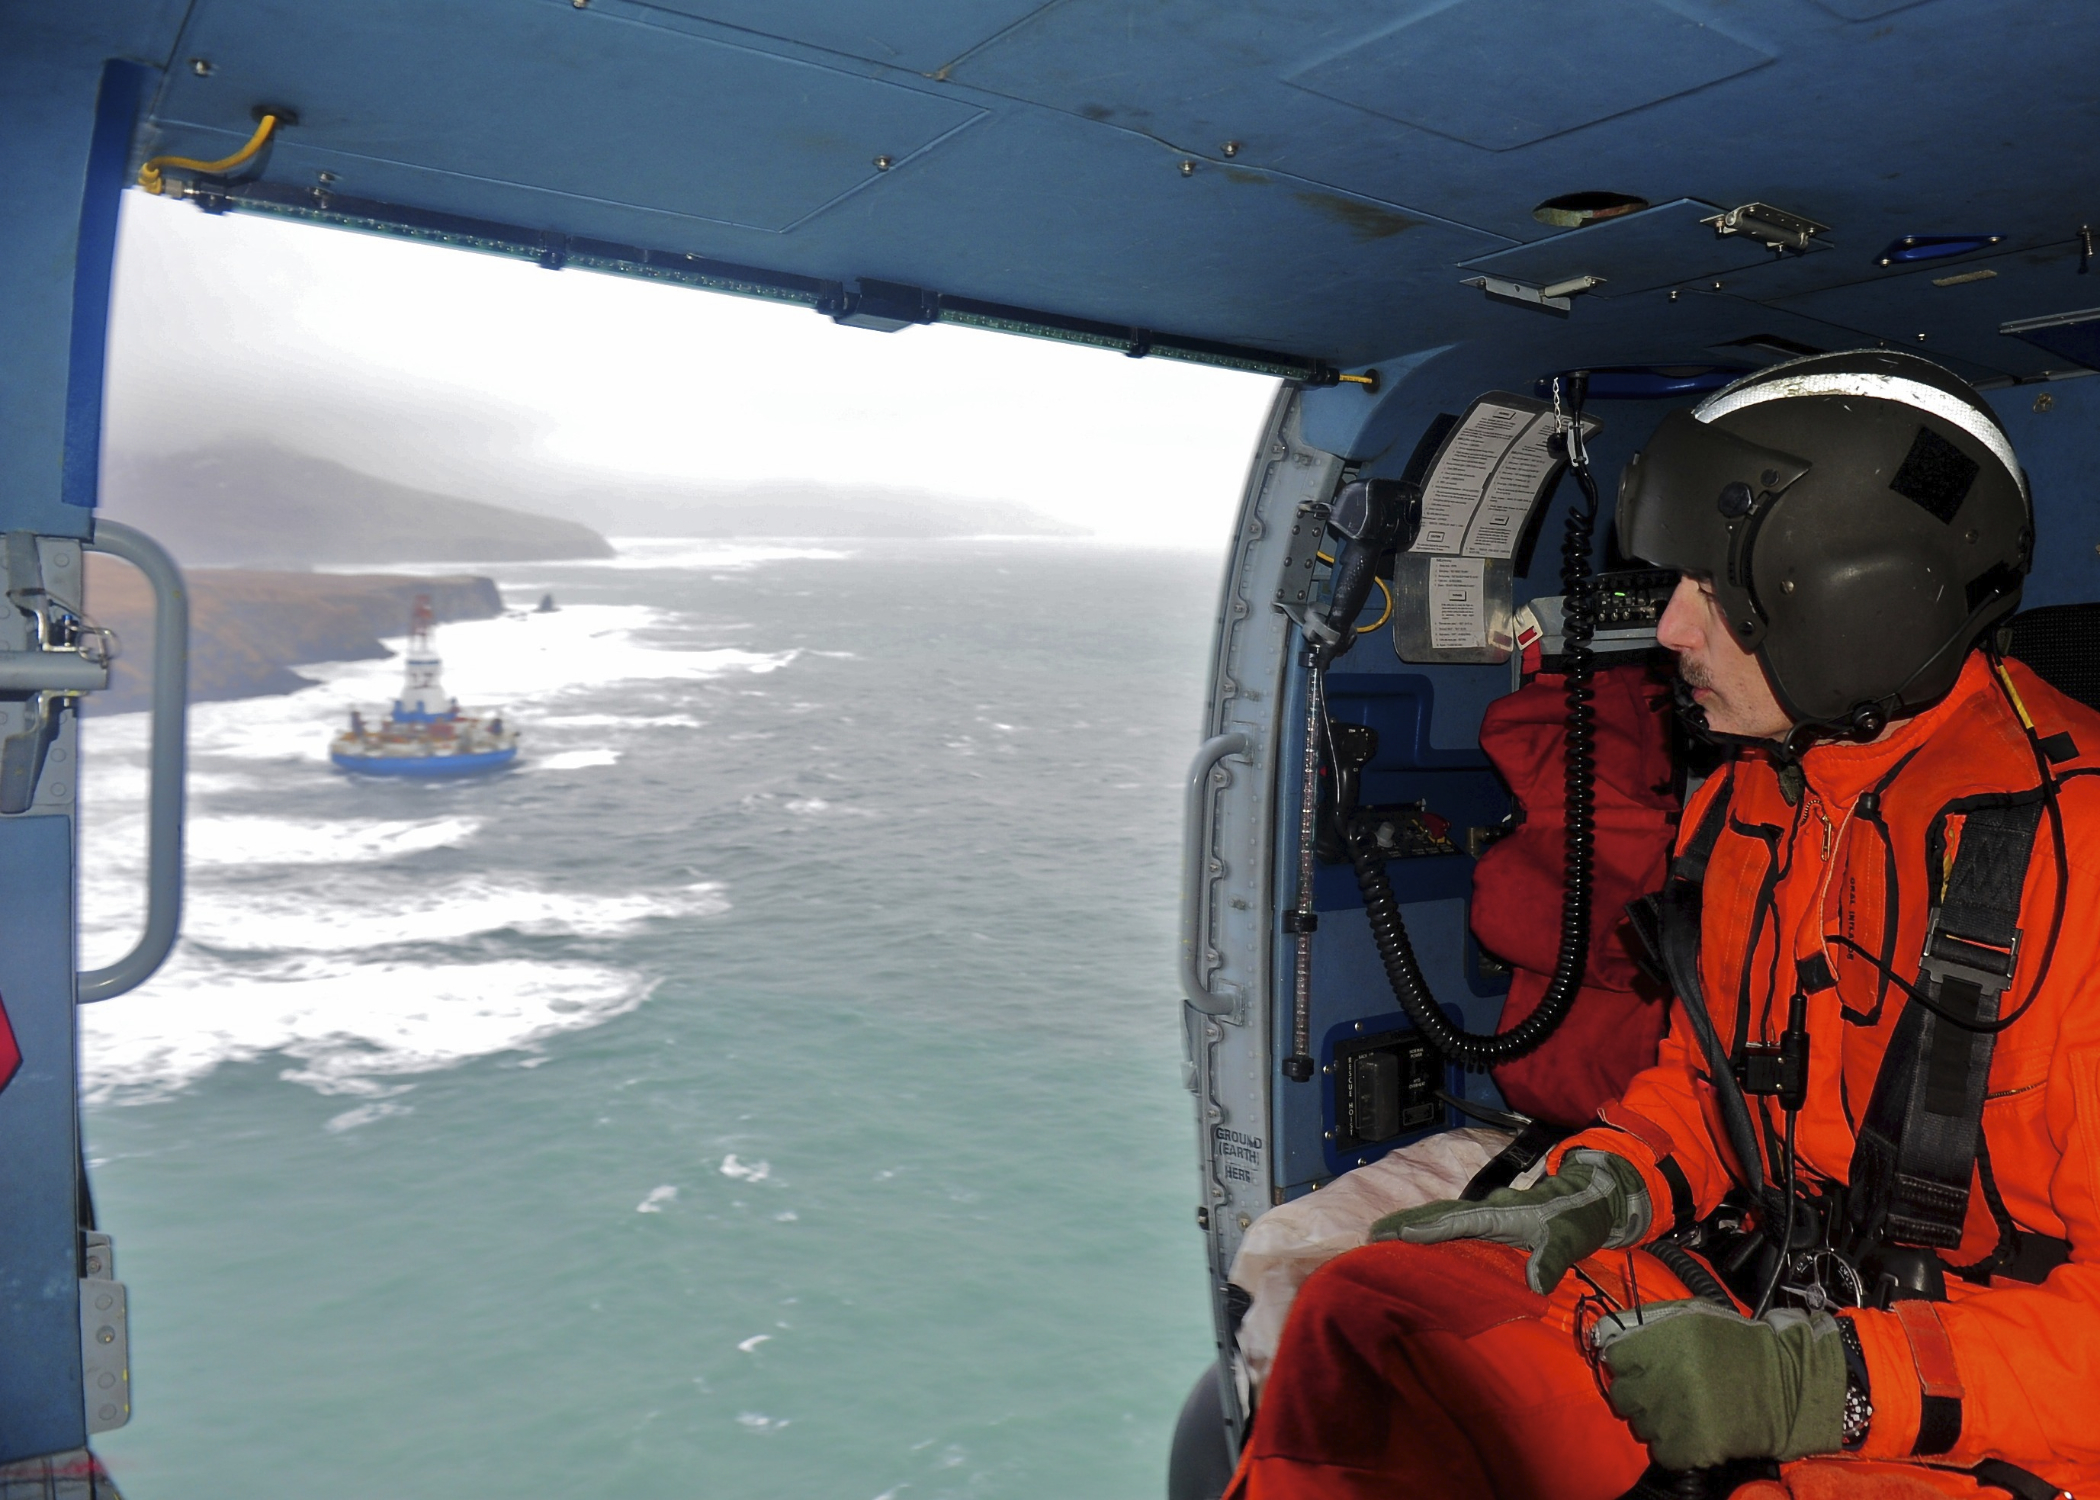 130101-G-IA651-584-Coast-Guard-overflight-of-Kulluk-aground